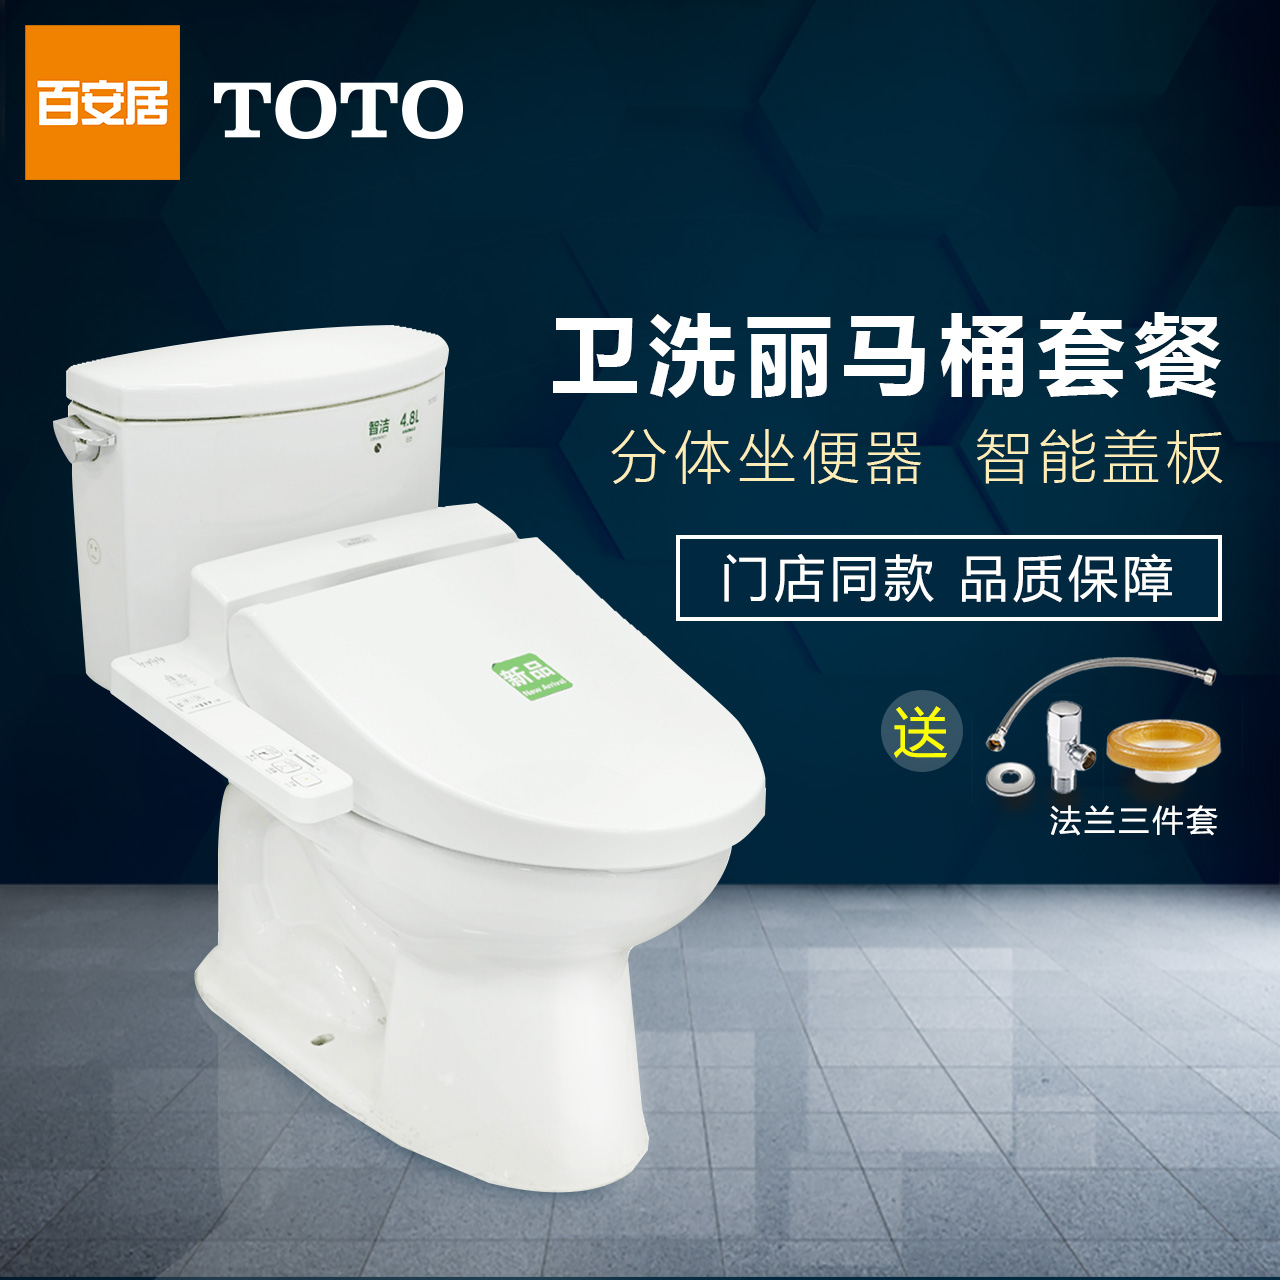 USD 936.07] All-in-one TOTO smart toilet set home washlet ceramic ...